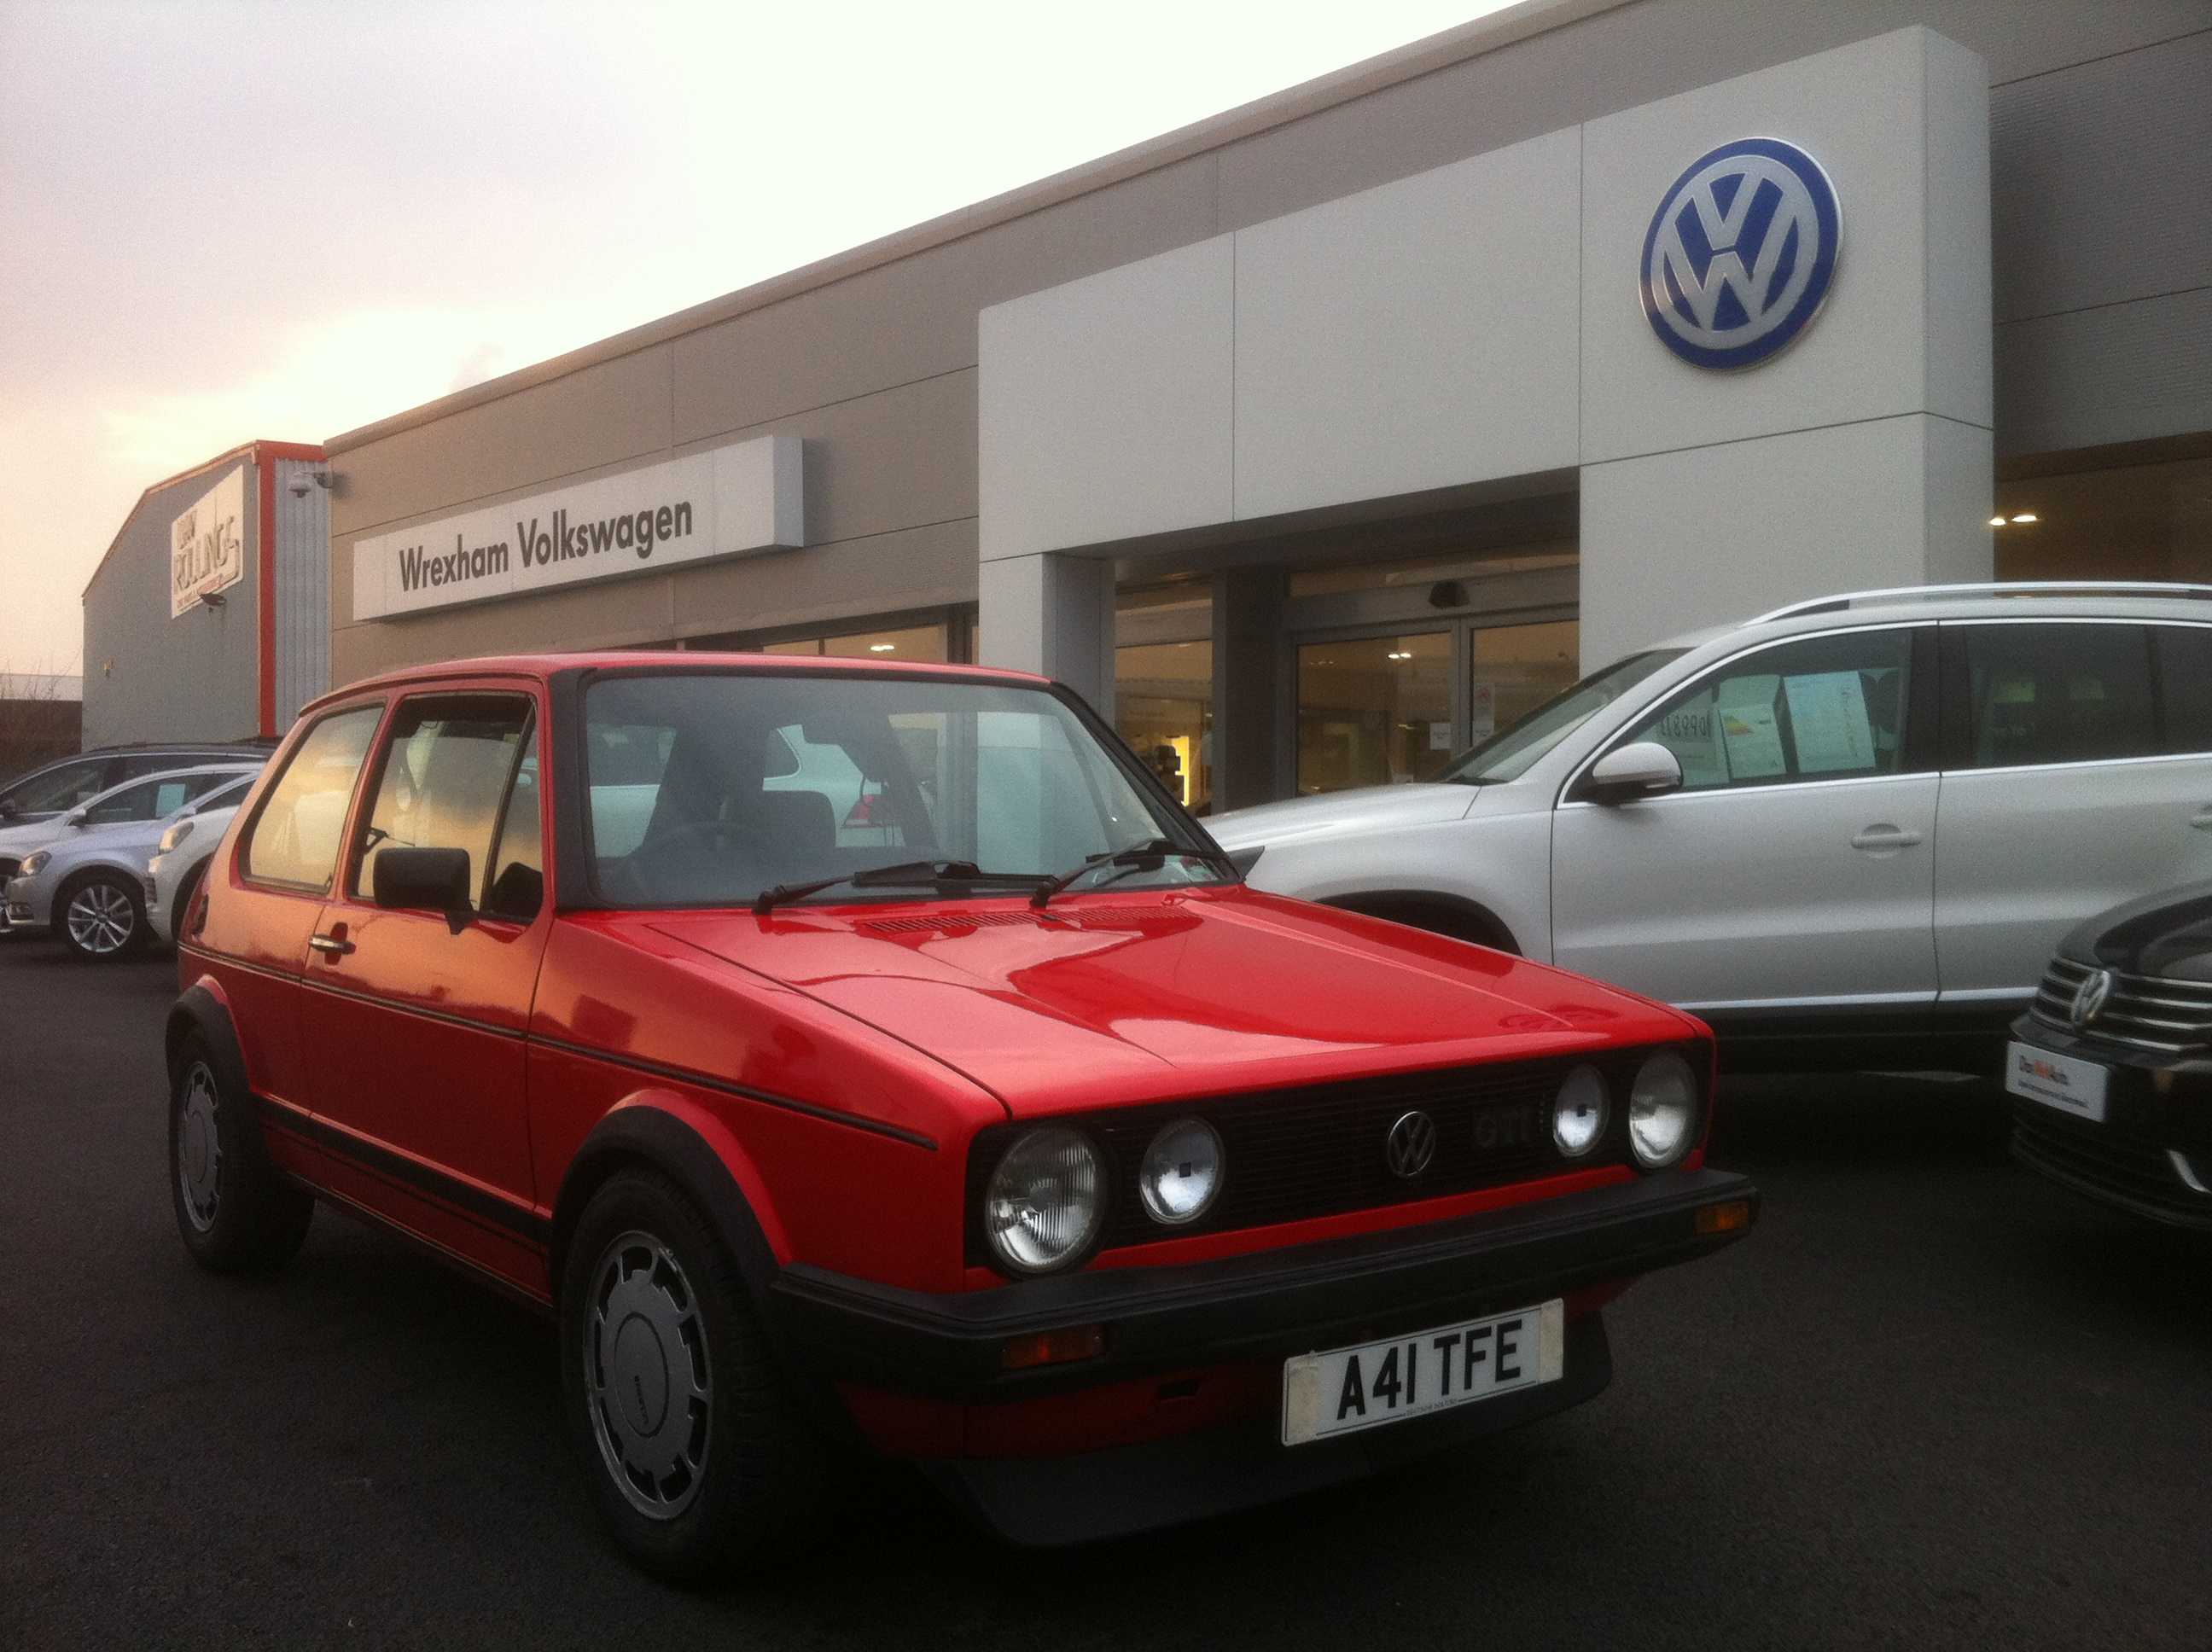 1983 Volkswagen Mk1 Golf Gti Campaign Edition The Bid Watcher Rabbit